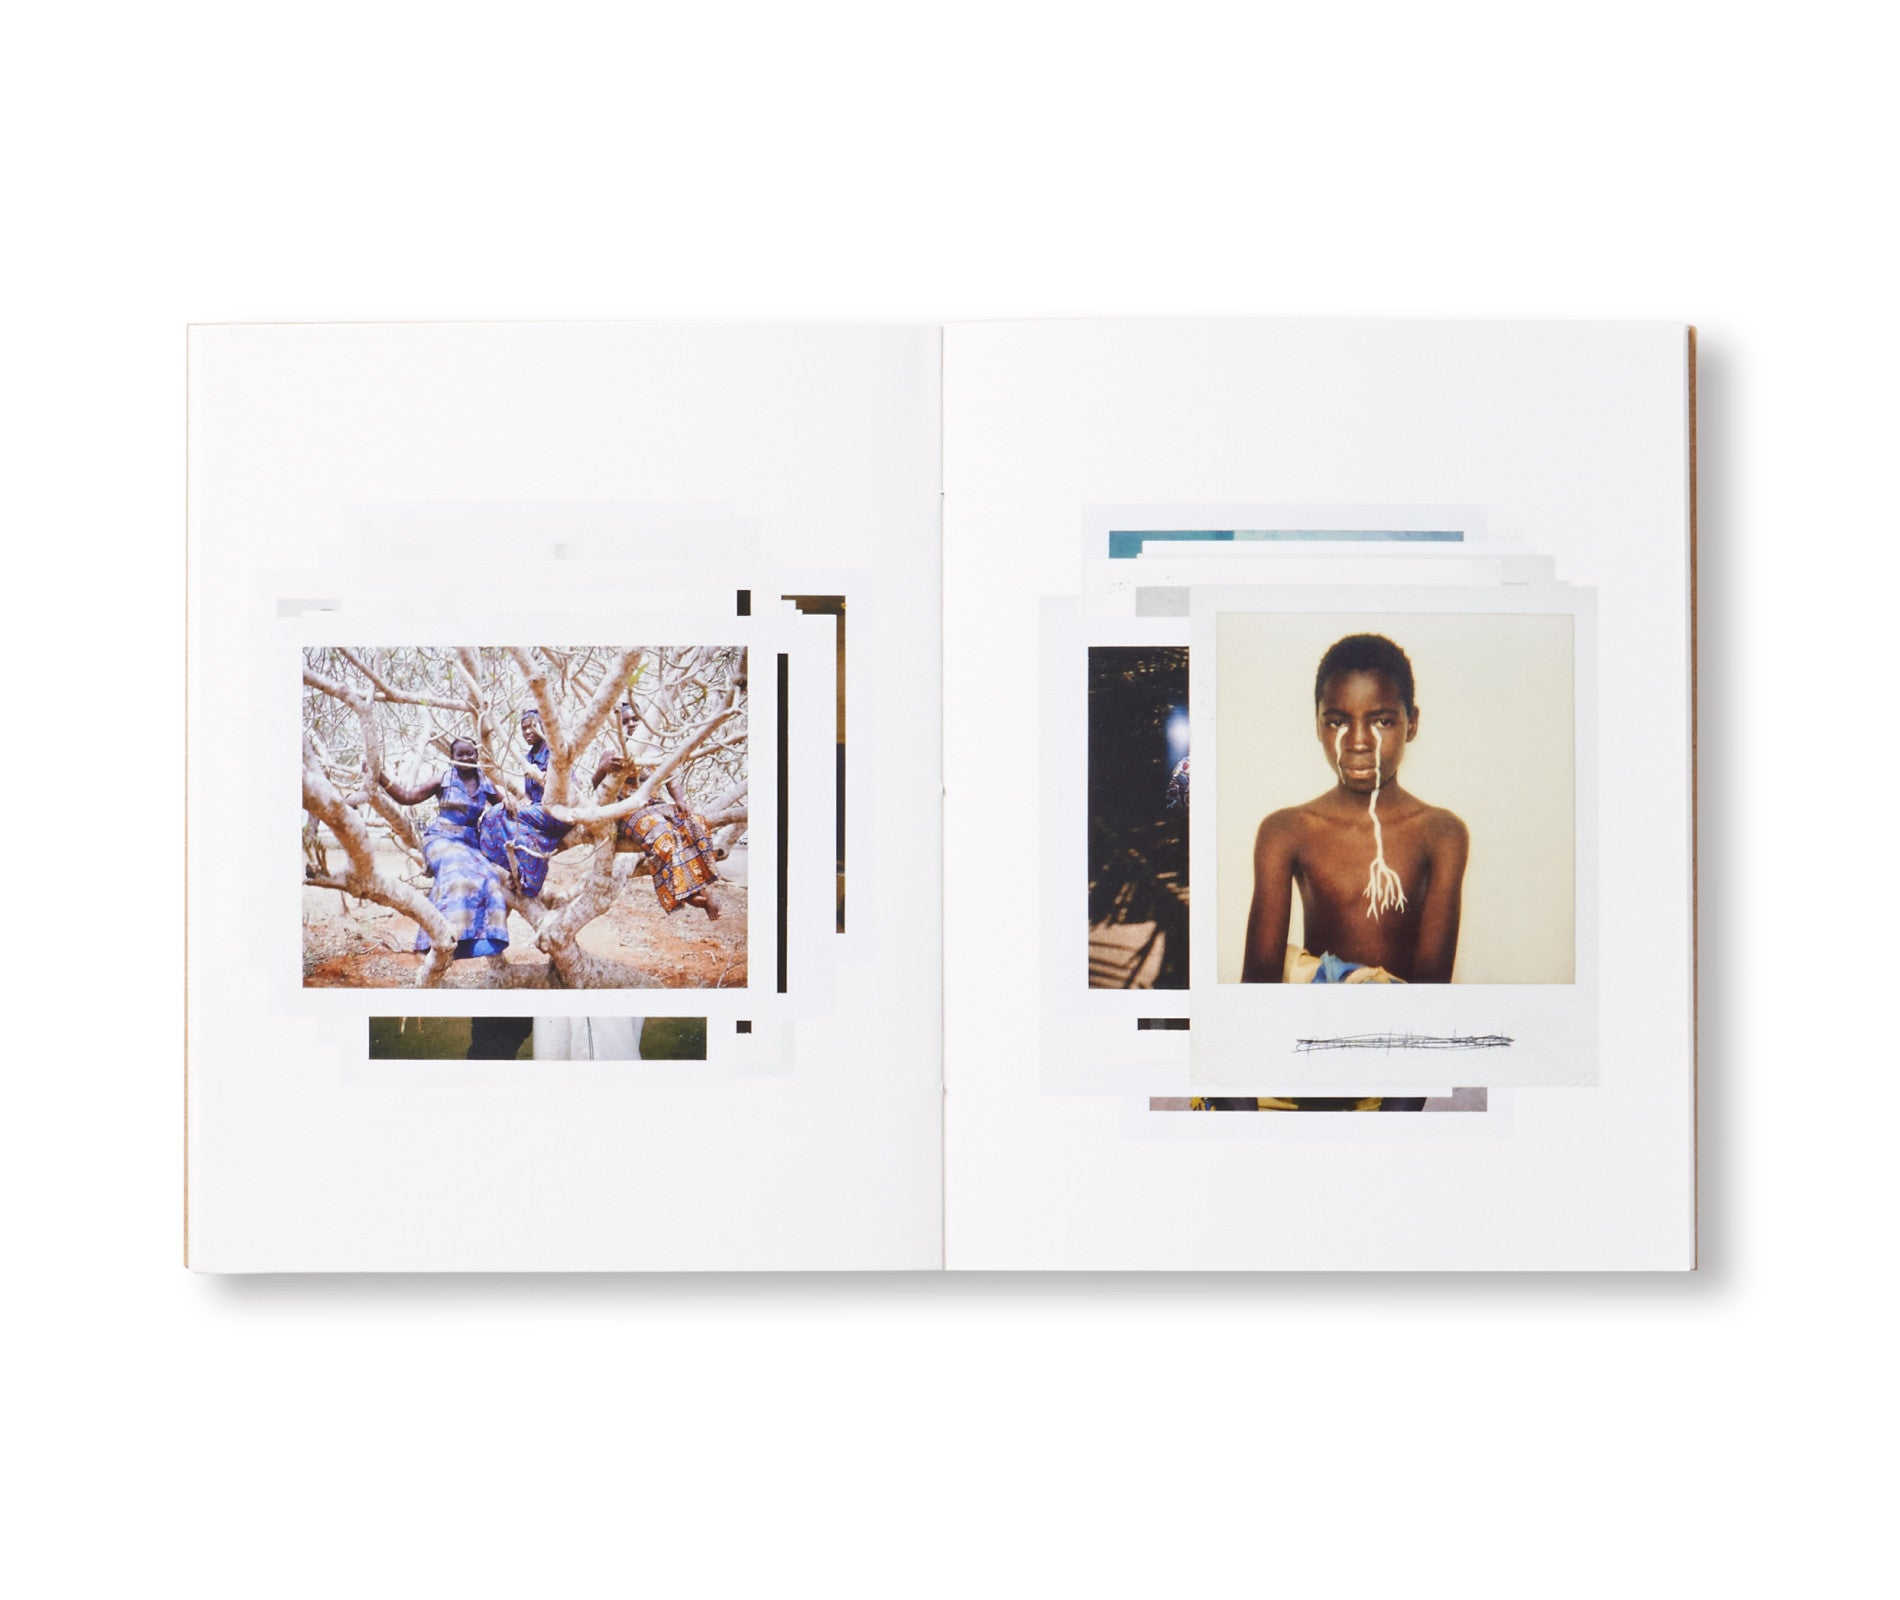 SKETCHES by Viviane Sassen [FIRST EDITION / SIGNED]